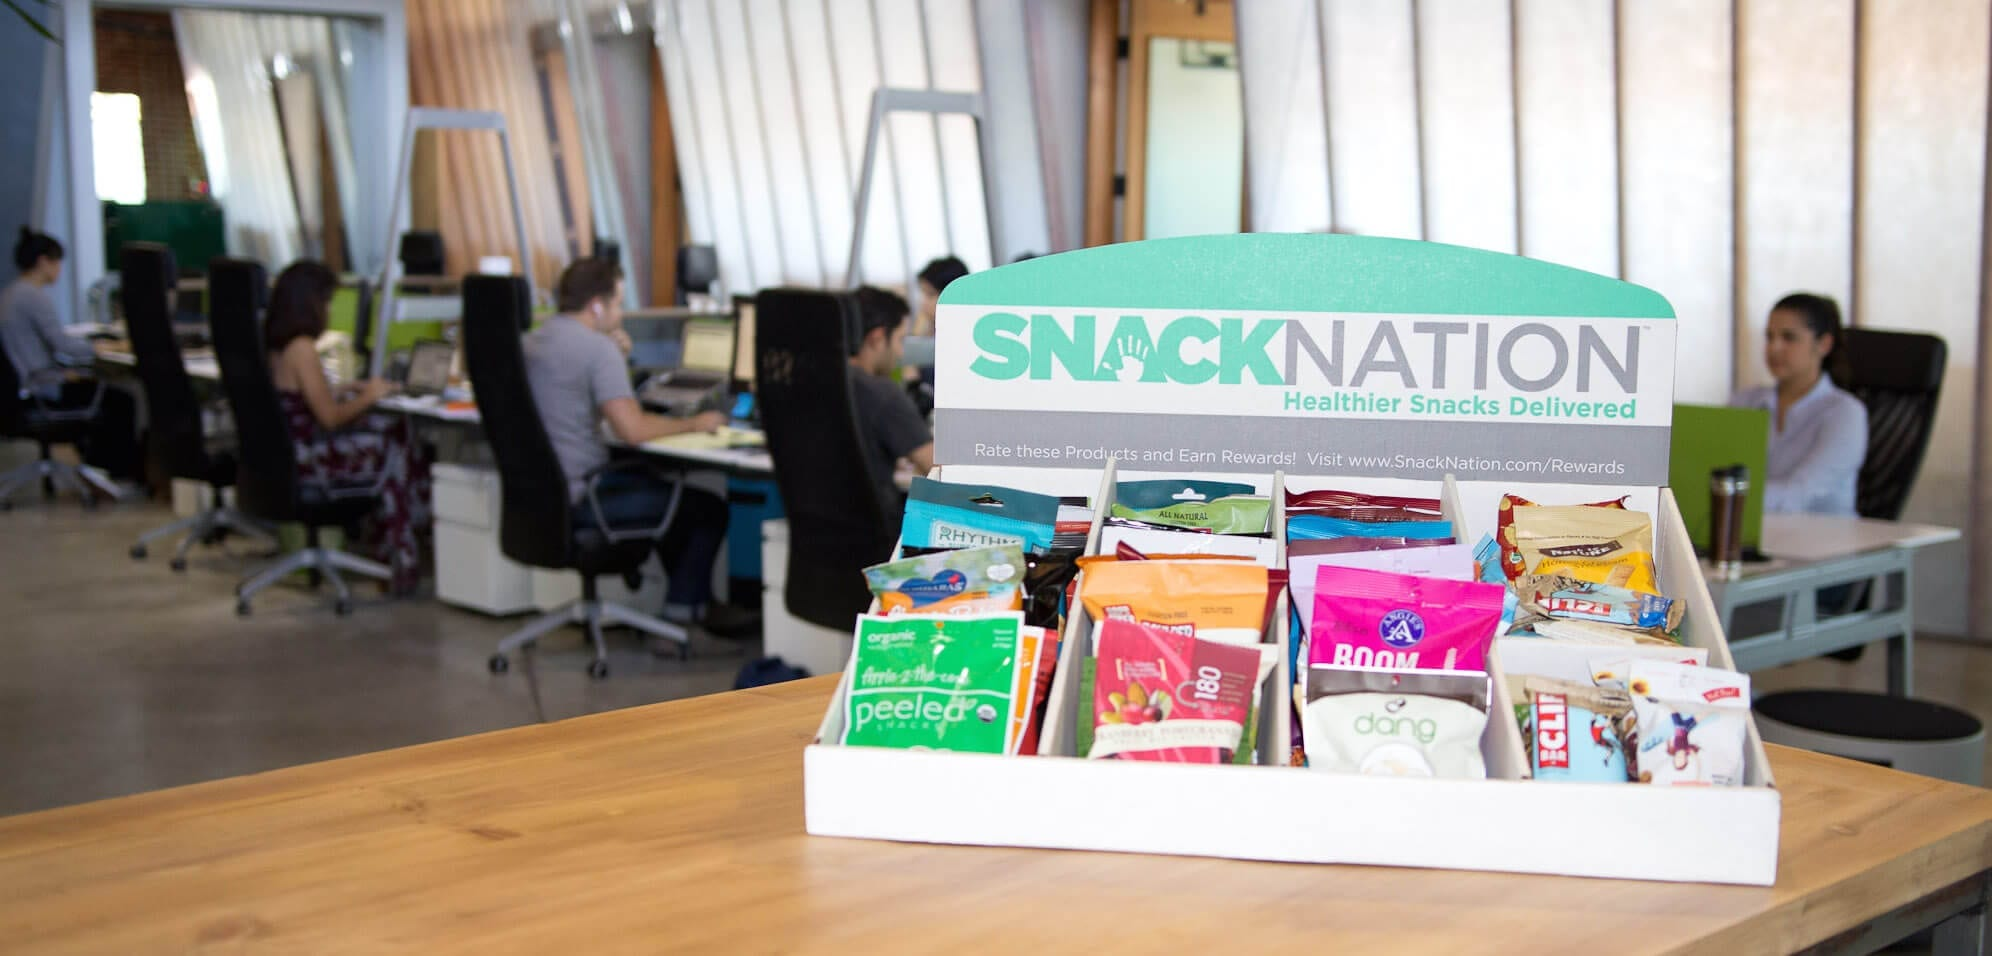 snacknation - healthy snacks for the office